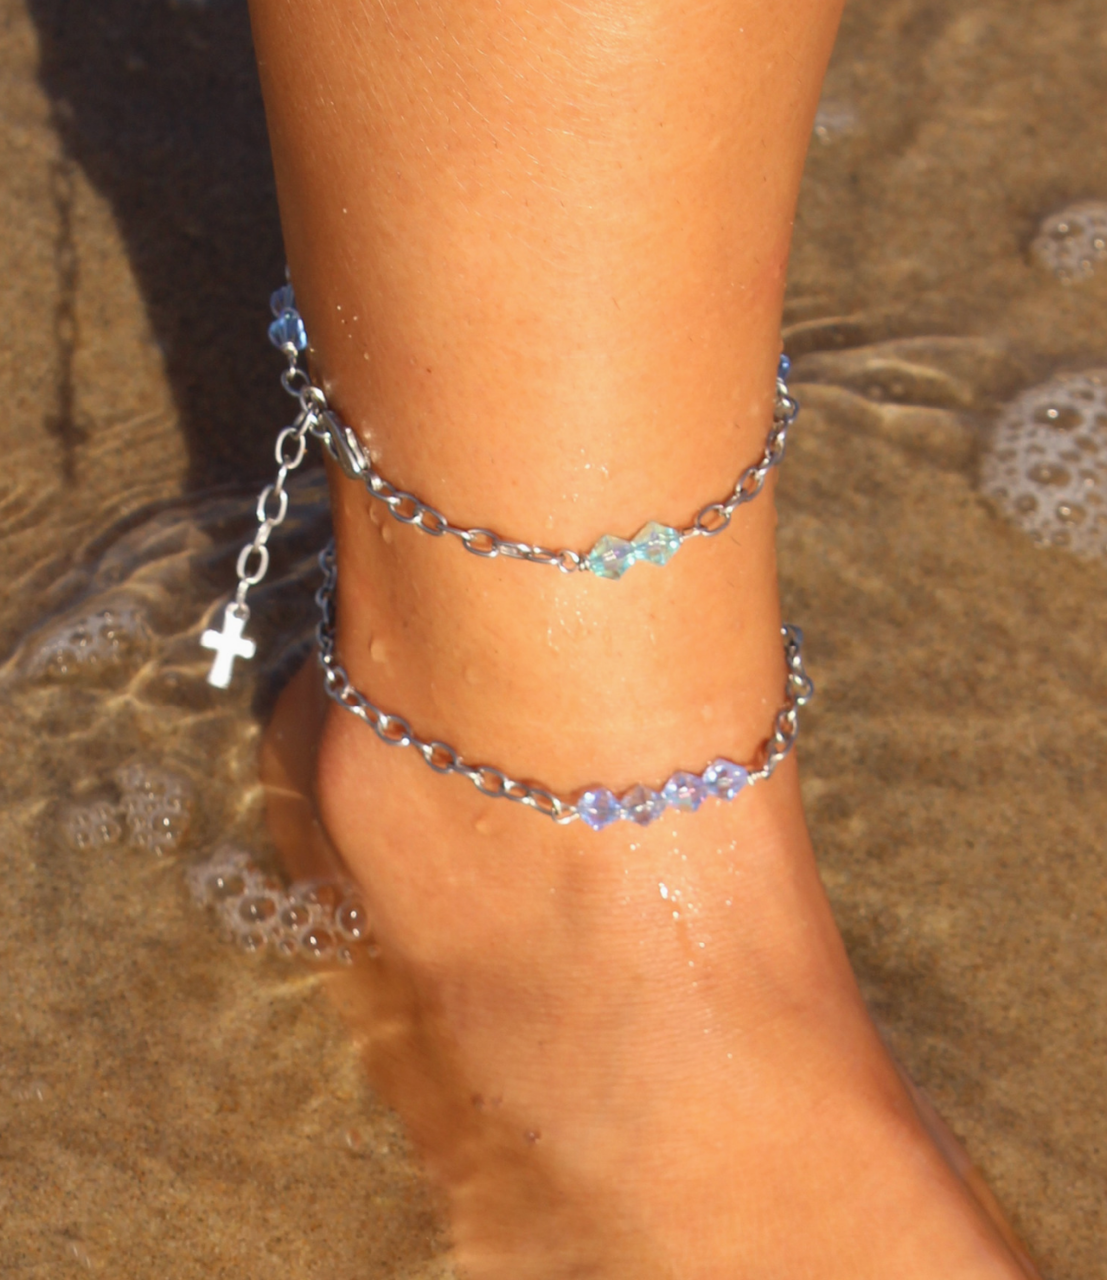 two layered anklets on foot in sand and water